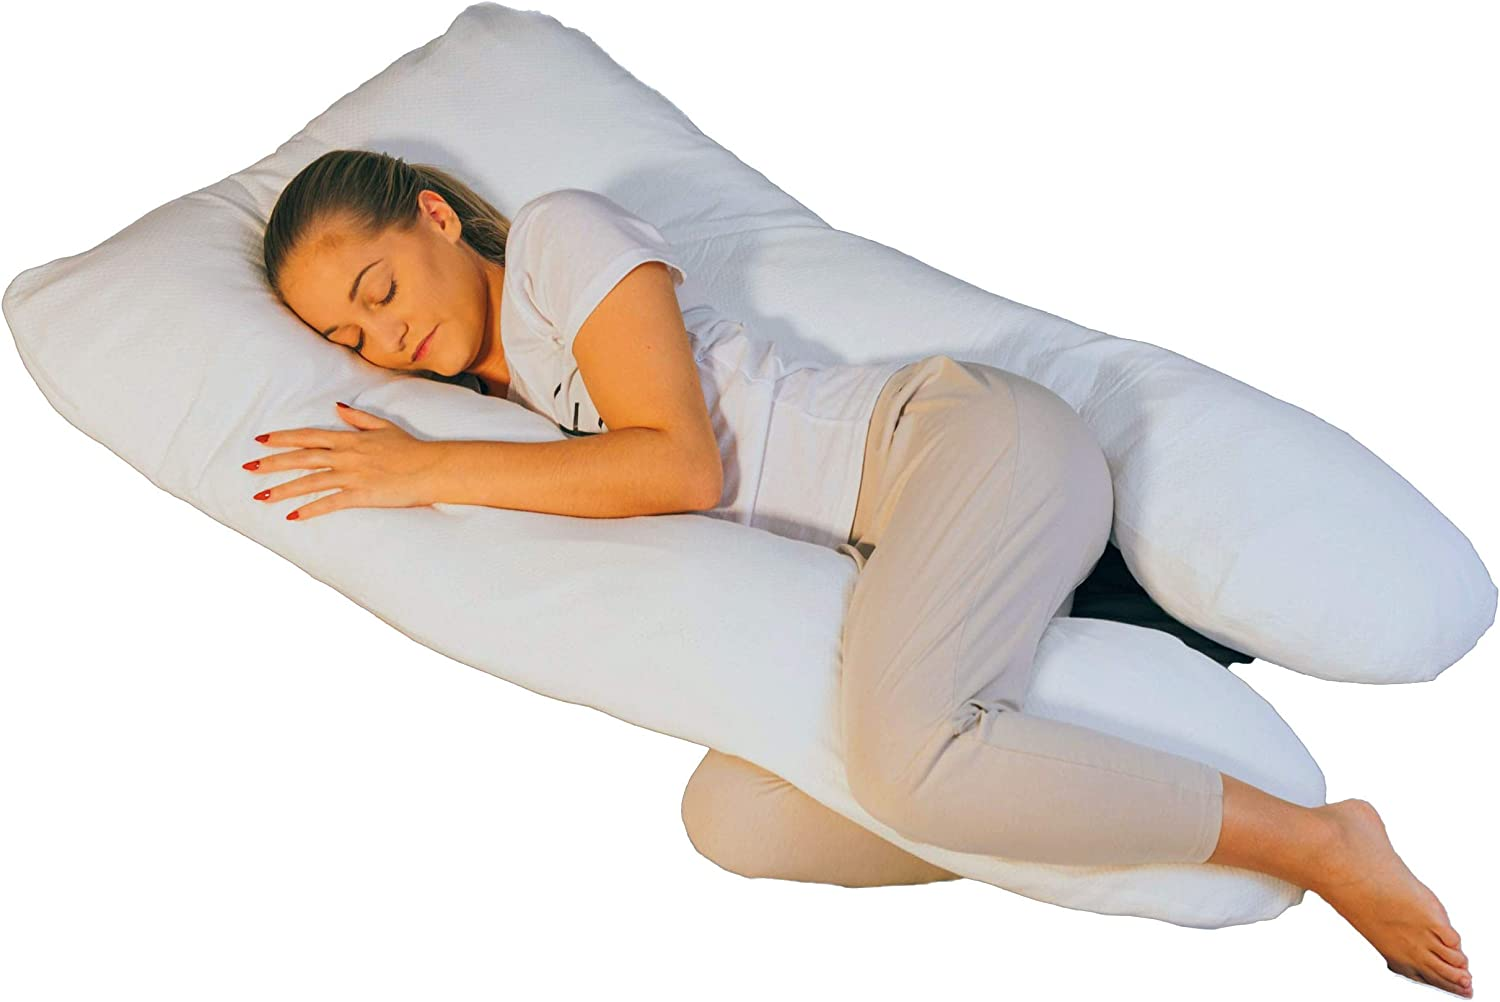 Hometex Full Body Pregnancy Pillow with